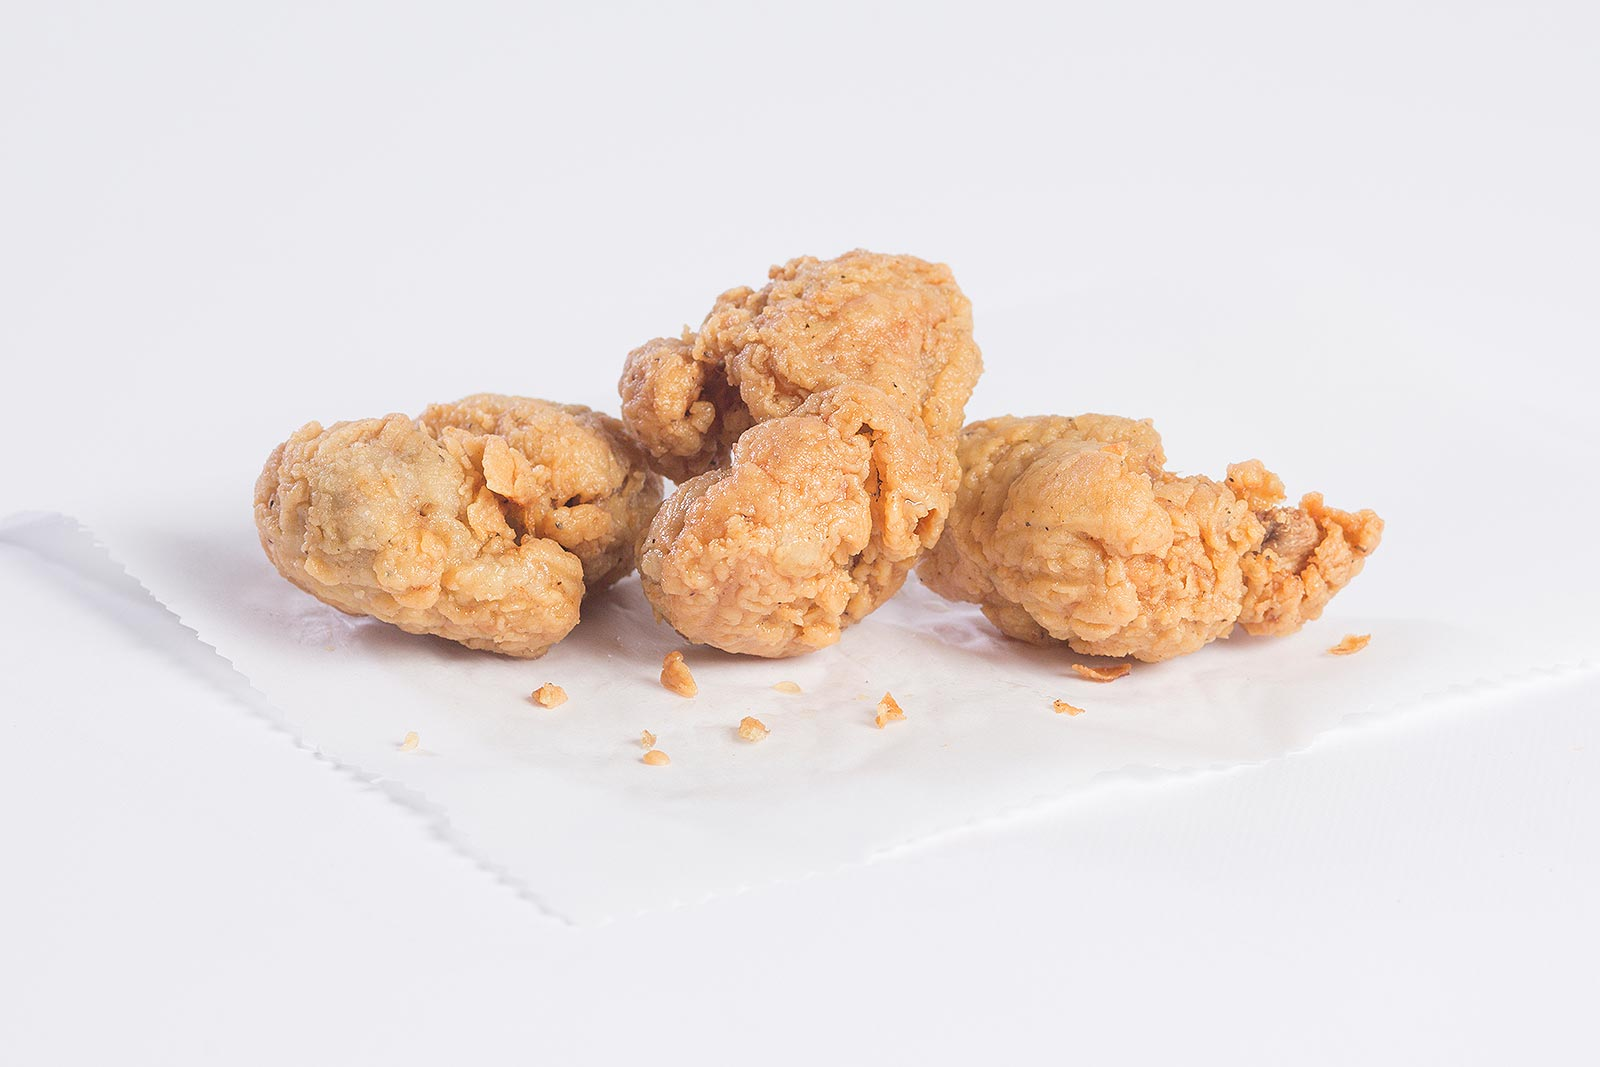 Breaded Chicken Gizzards image